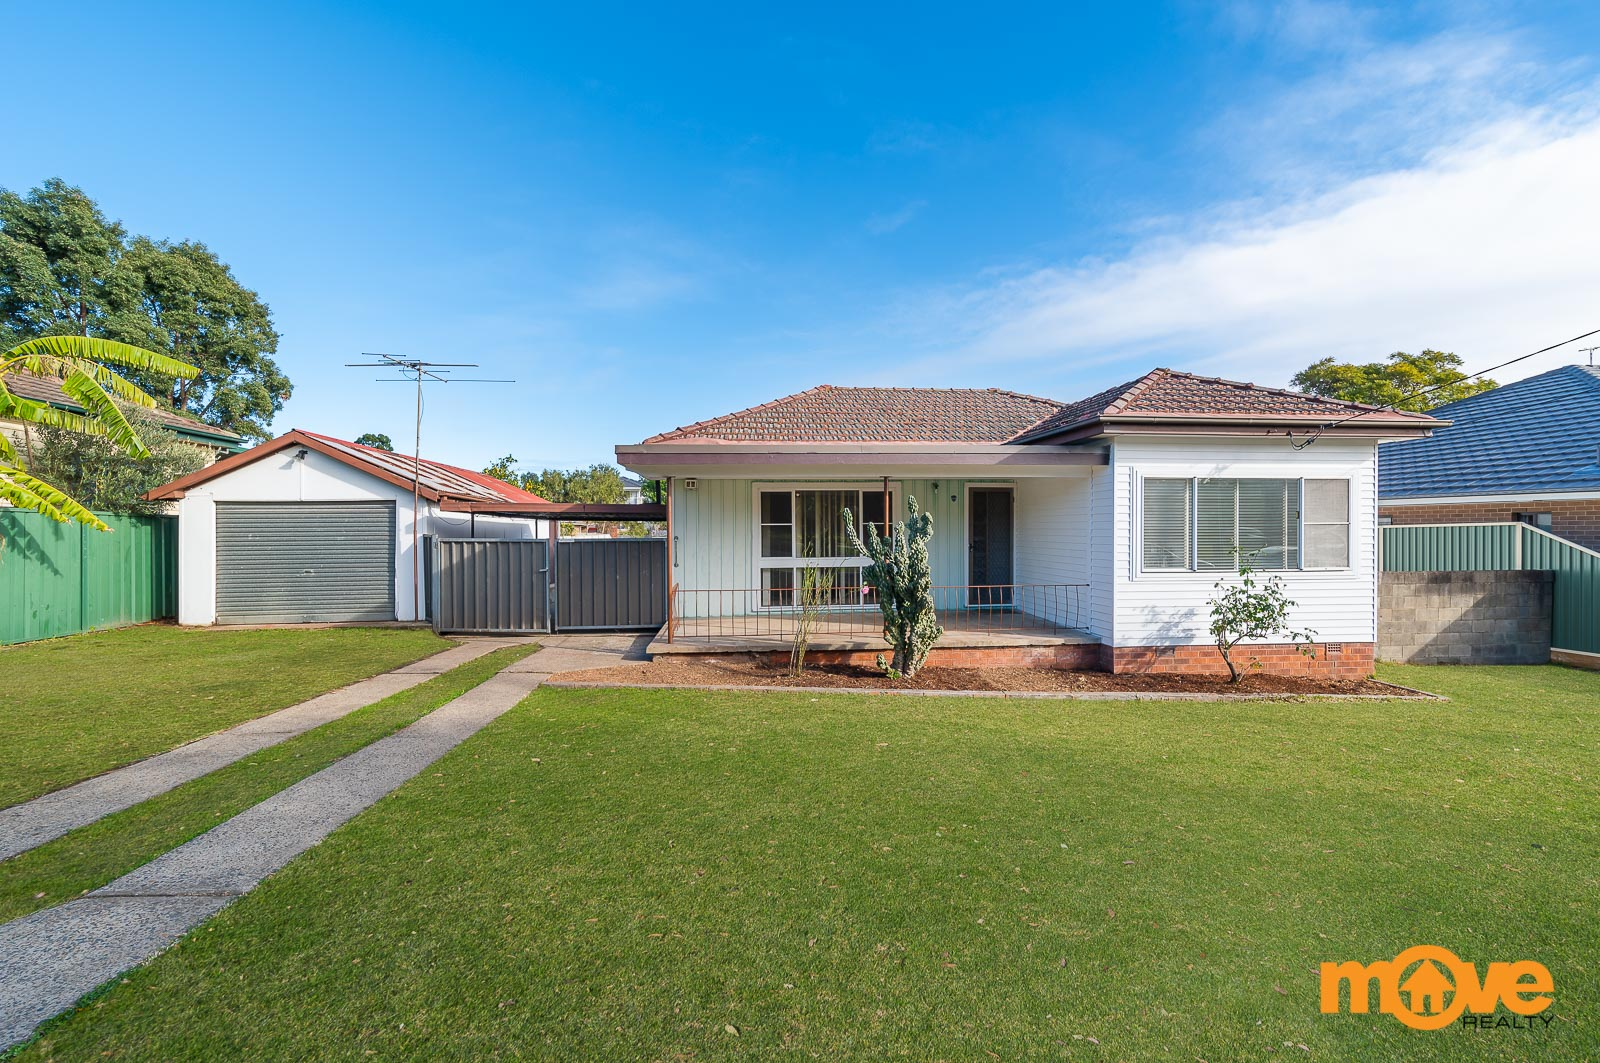 Sale 118 Bogalara Road, Old Toongabbie NSW 2146